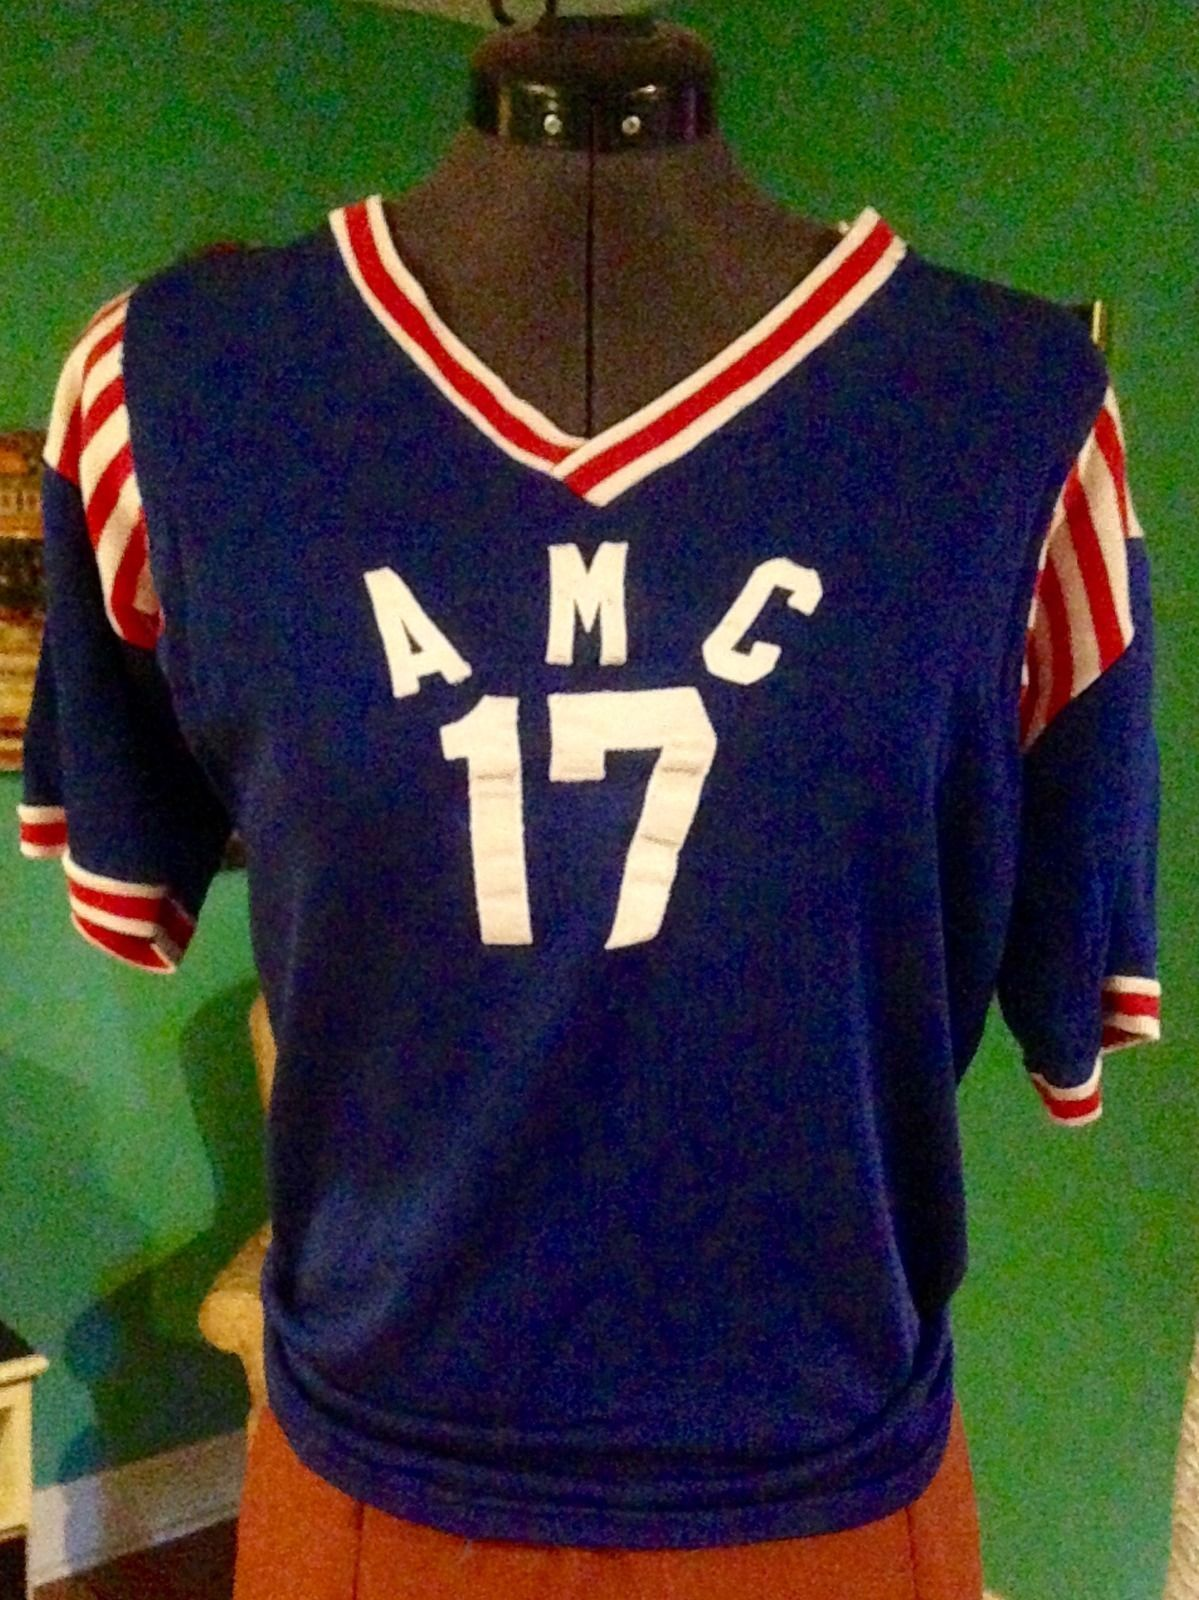 953e8aef6b Vintage 1950s Mason Athletic Wear Jersey